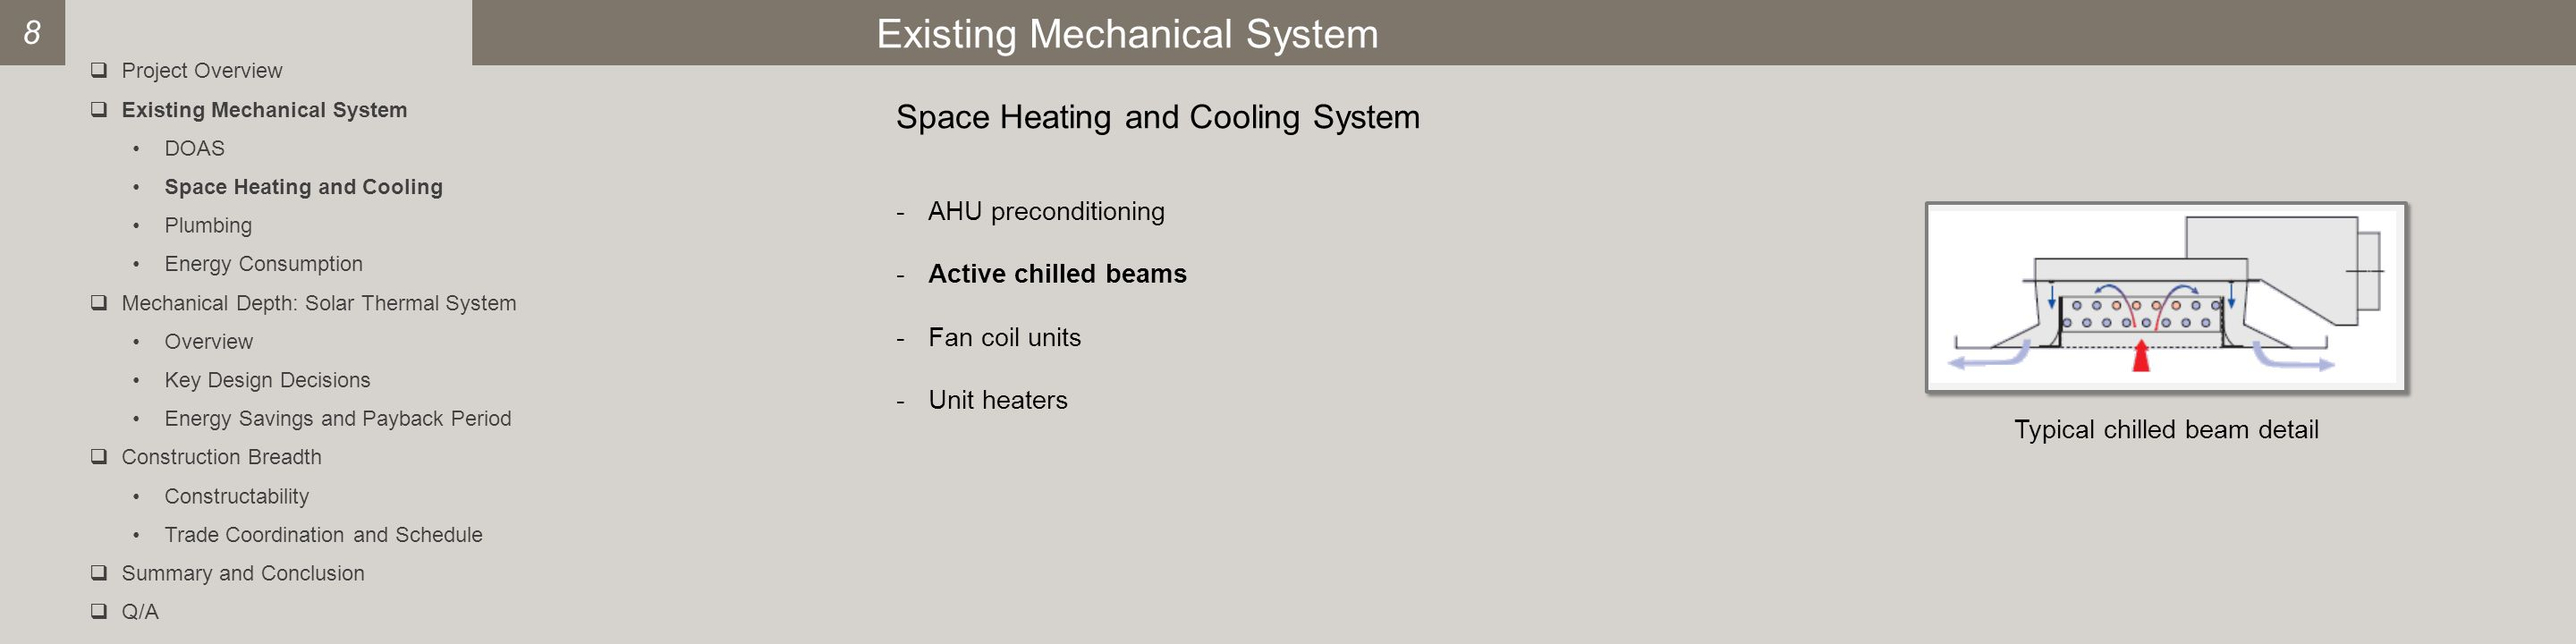 Existing Mechanical System 8 -AHU preconditioning -Active chilled beams -Fan coil units -Unit heaters Typical chilled beam detail Space Heating and Cooling System  Project Overview  Existing Mechanical System DOAS Space Heating and Cooling Plumbing Energy Consumption  Mechanical Depth: Solar Thermal System Overview Key Design Decisions Energy Savings and Payback Period  Construction Breadth Constructability Trade Coordination and Schedule  Summary and Conclusion  Q/A